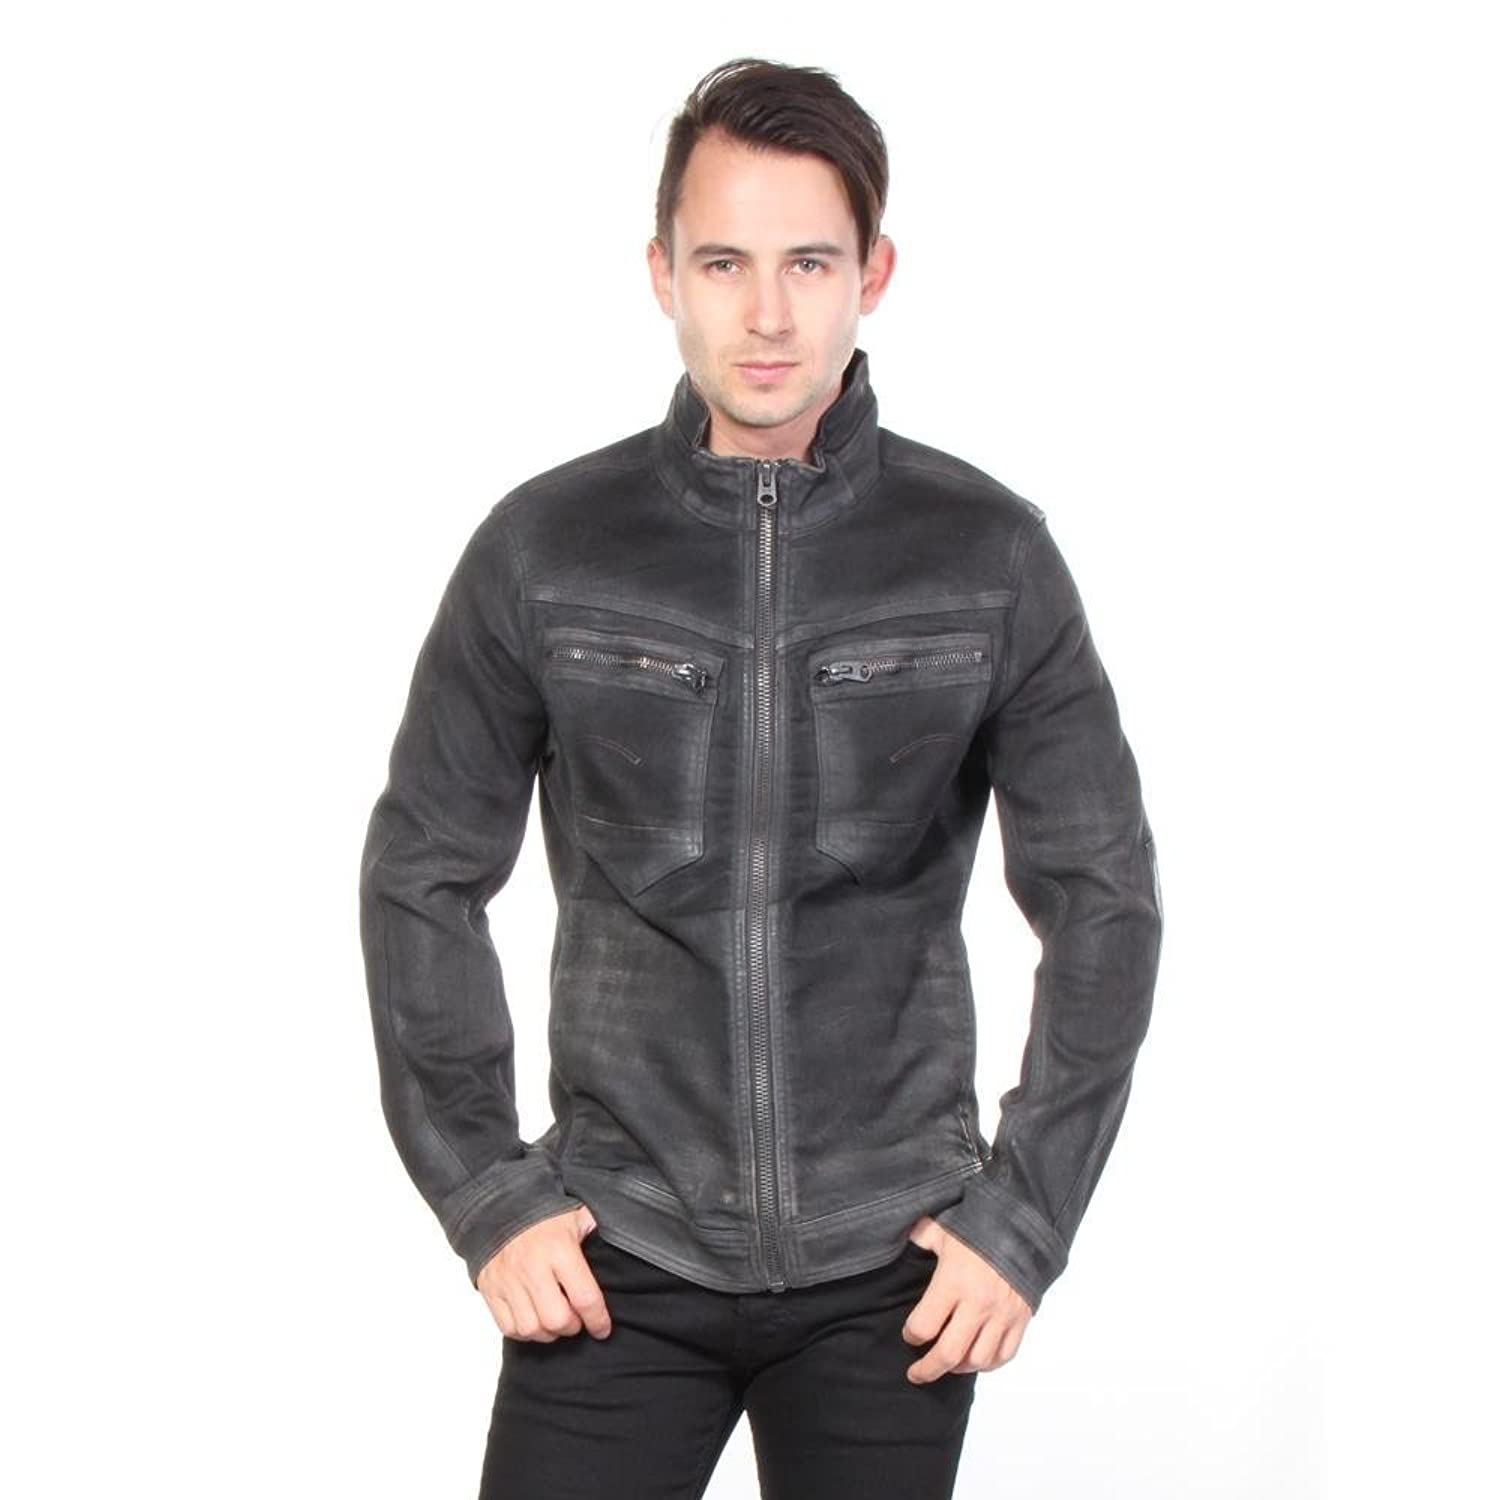 G-star Jacken Arc Zip 3D Jacke Jacket Herren